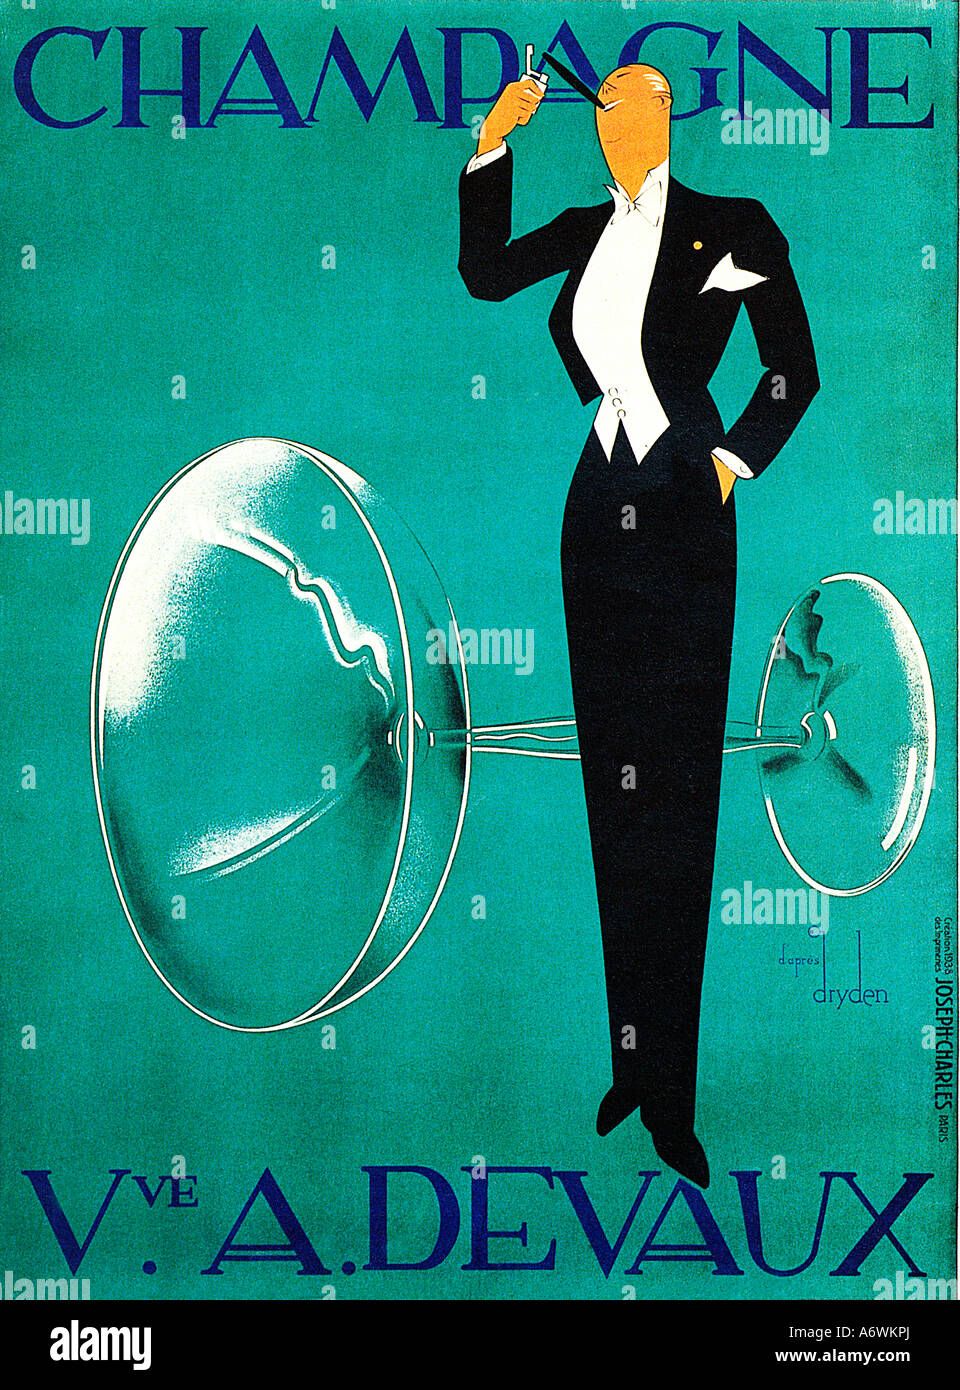 champagne devaux the famous 1930s art deco poster for the french stock photo royalty free image. Black Bedroom Furniture Sets. Home Design Ideas